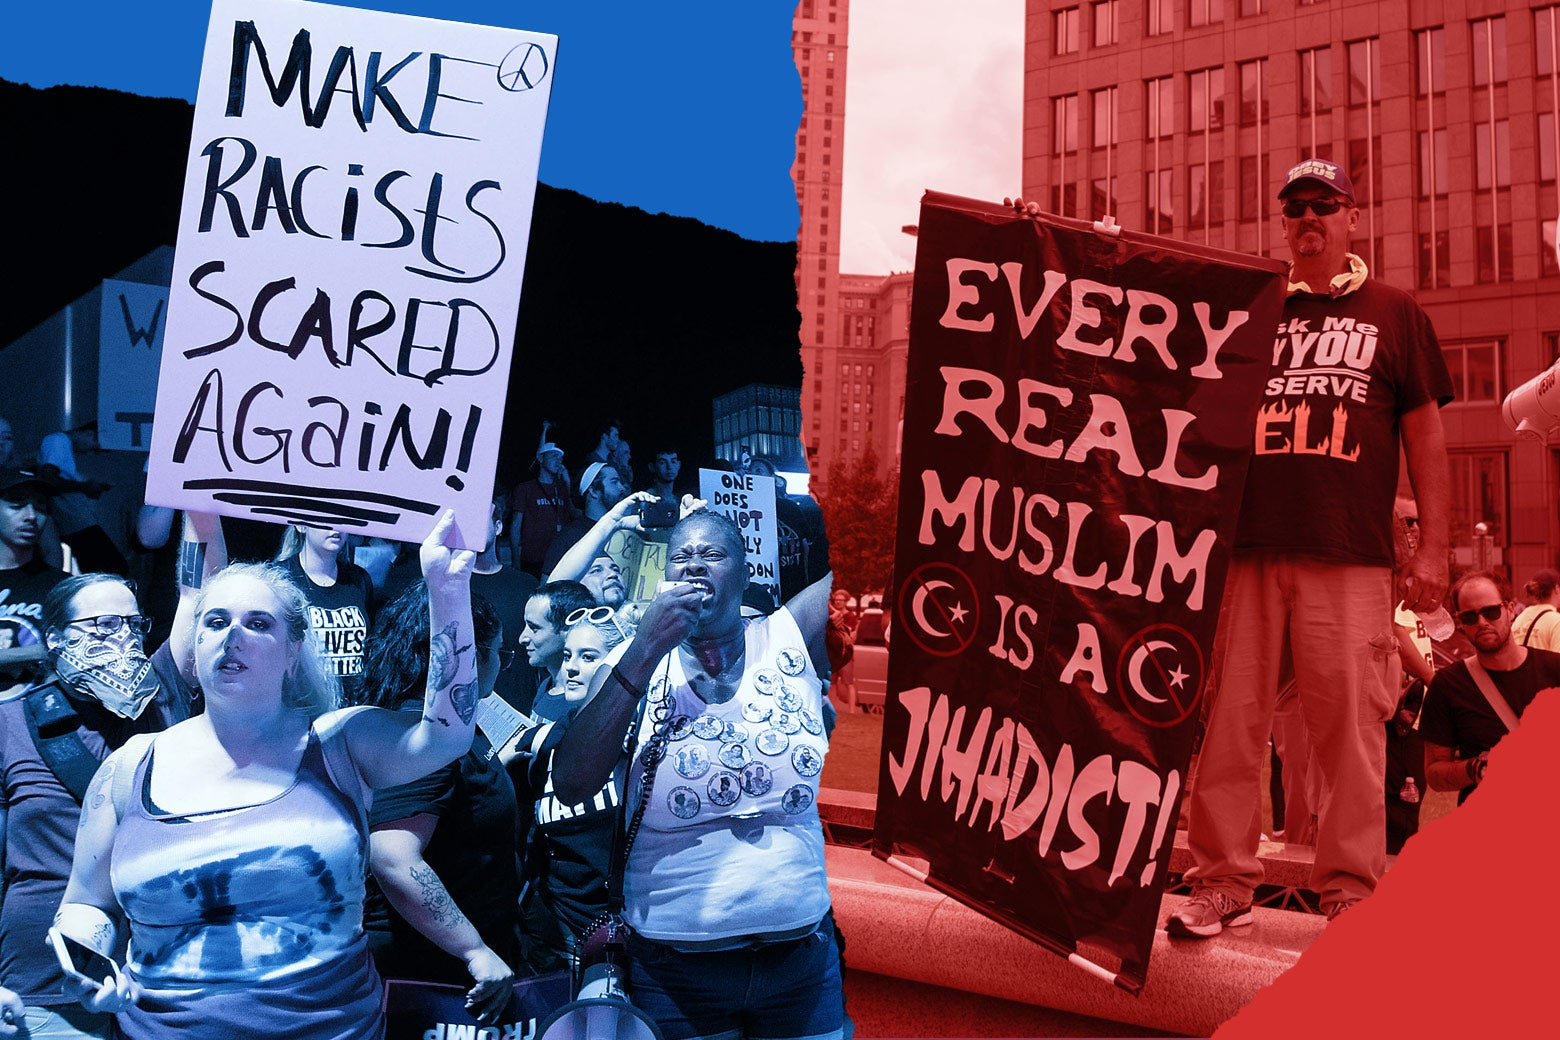 "At left, protesters hold up a sign that says, ""Make racists scared again."" At right, a protester holds up a sign that says, ""Every real Muslim is a jihadist."""